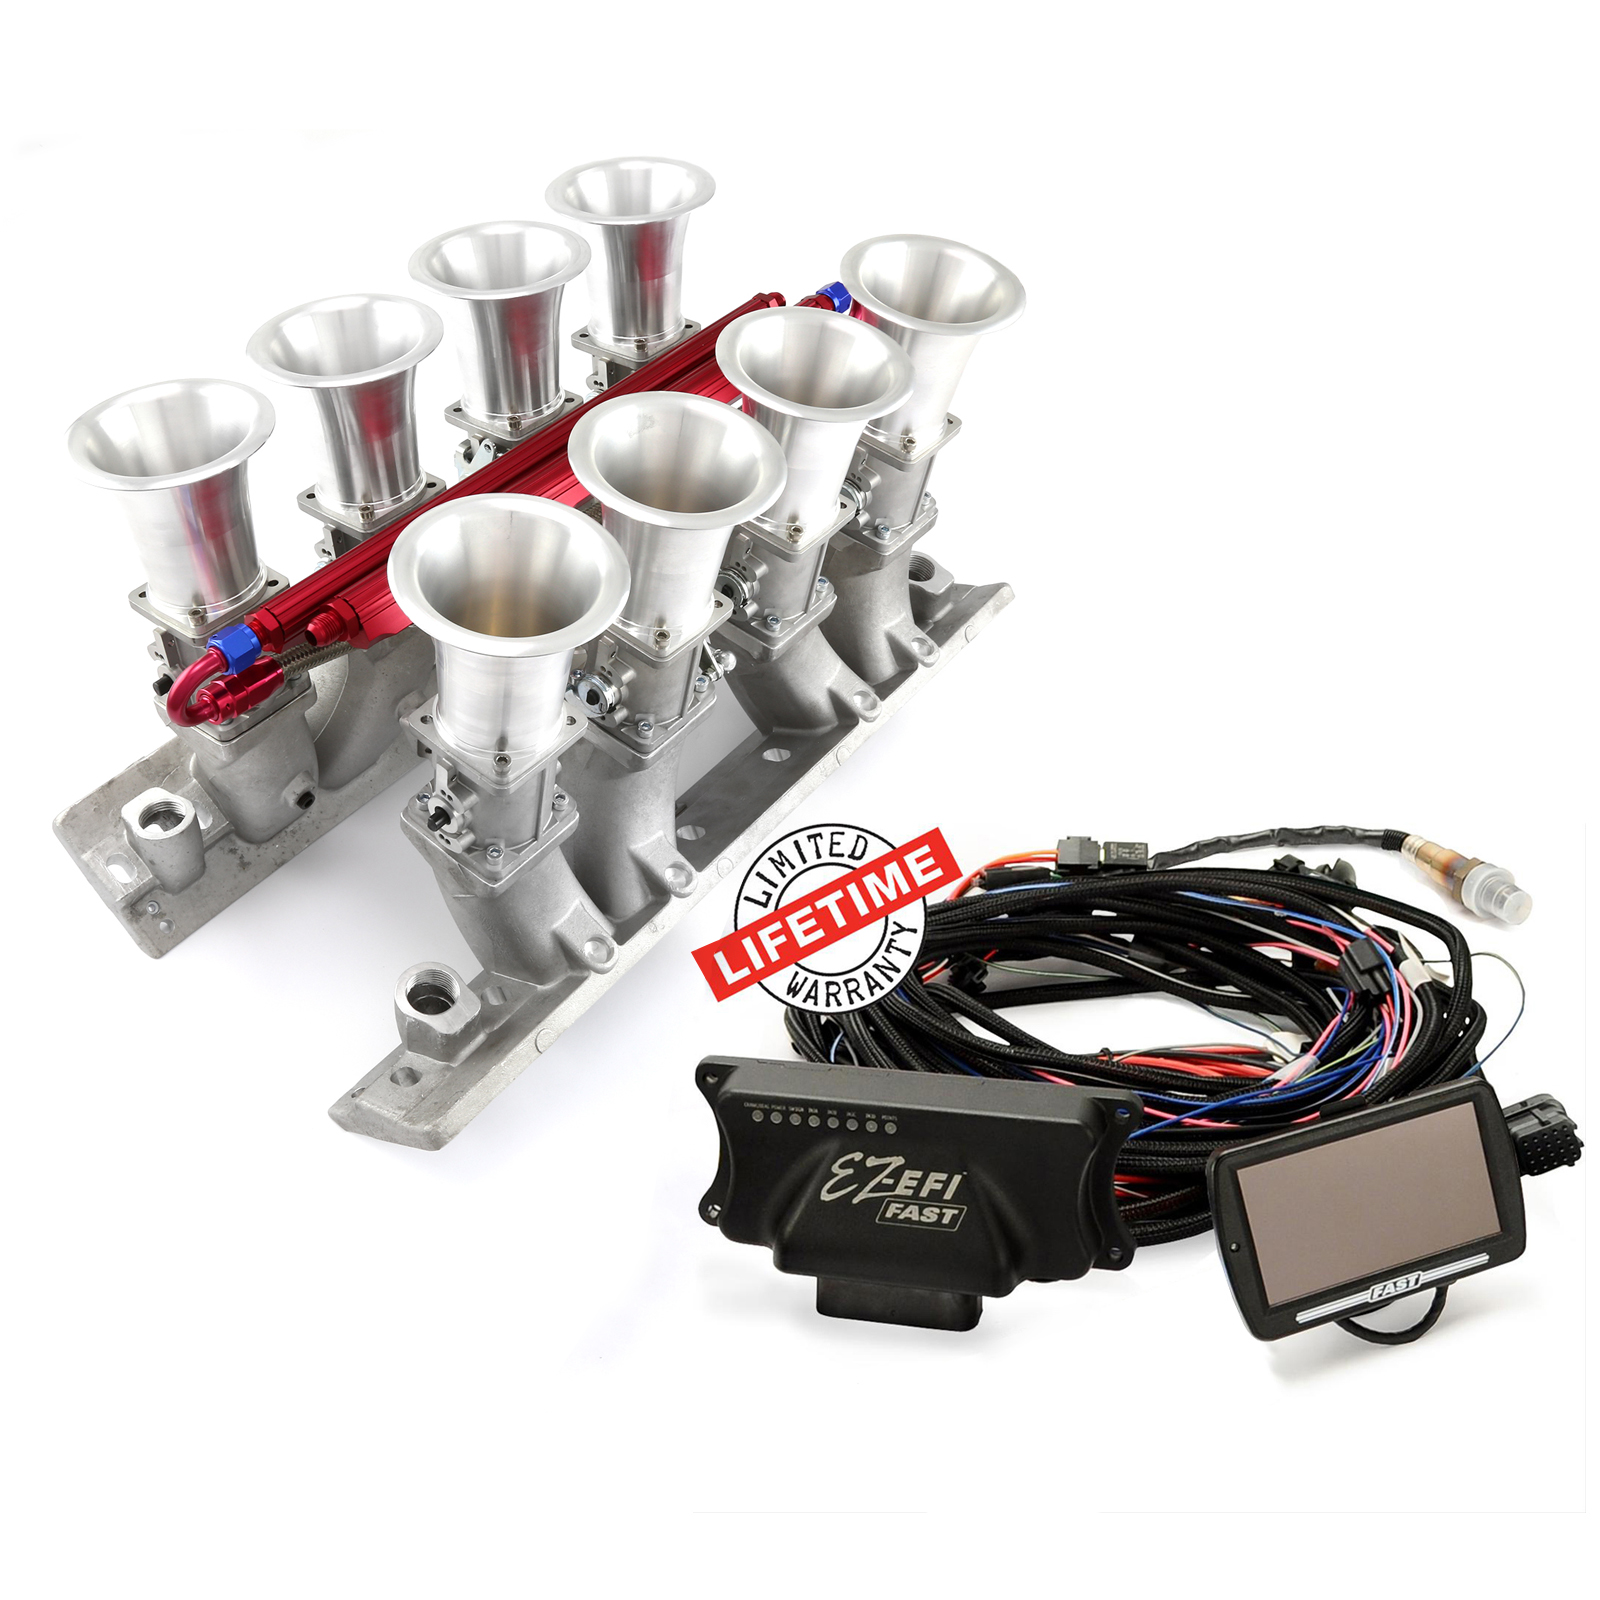 Chevy BBC 454 EFI Manifold & FAST EZ-EFI 2.0 Self-Tuning Fuel Injection System